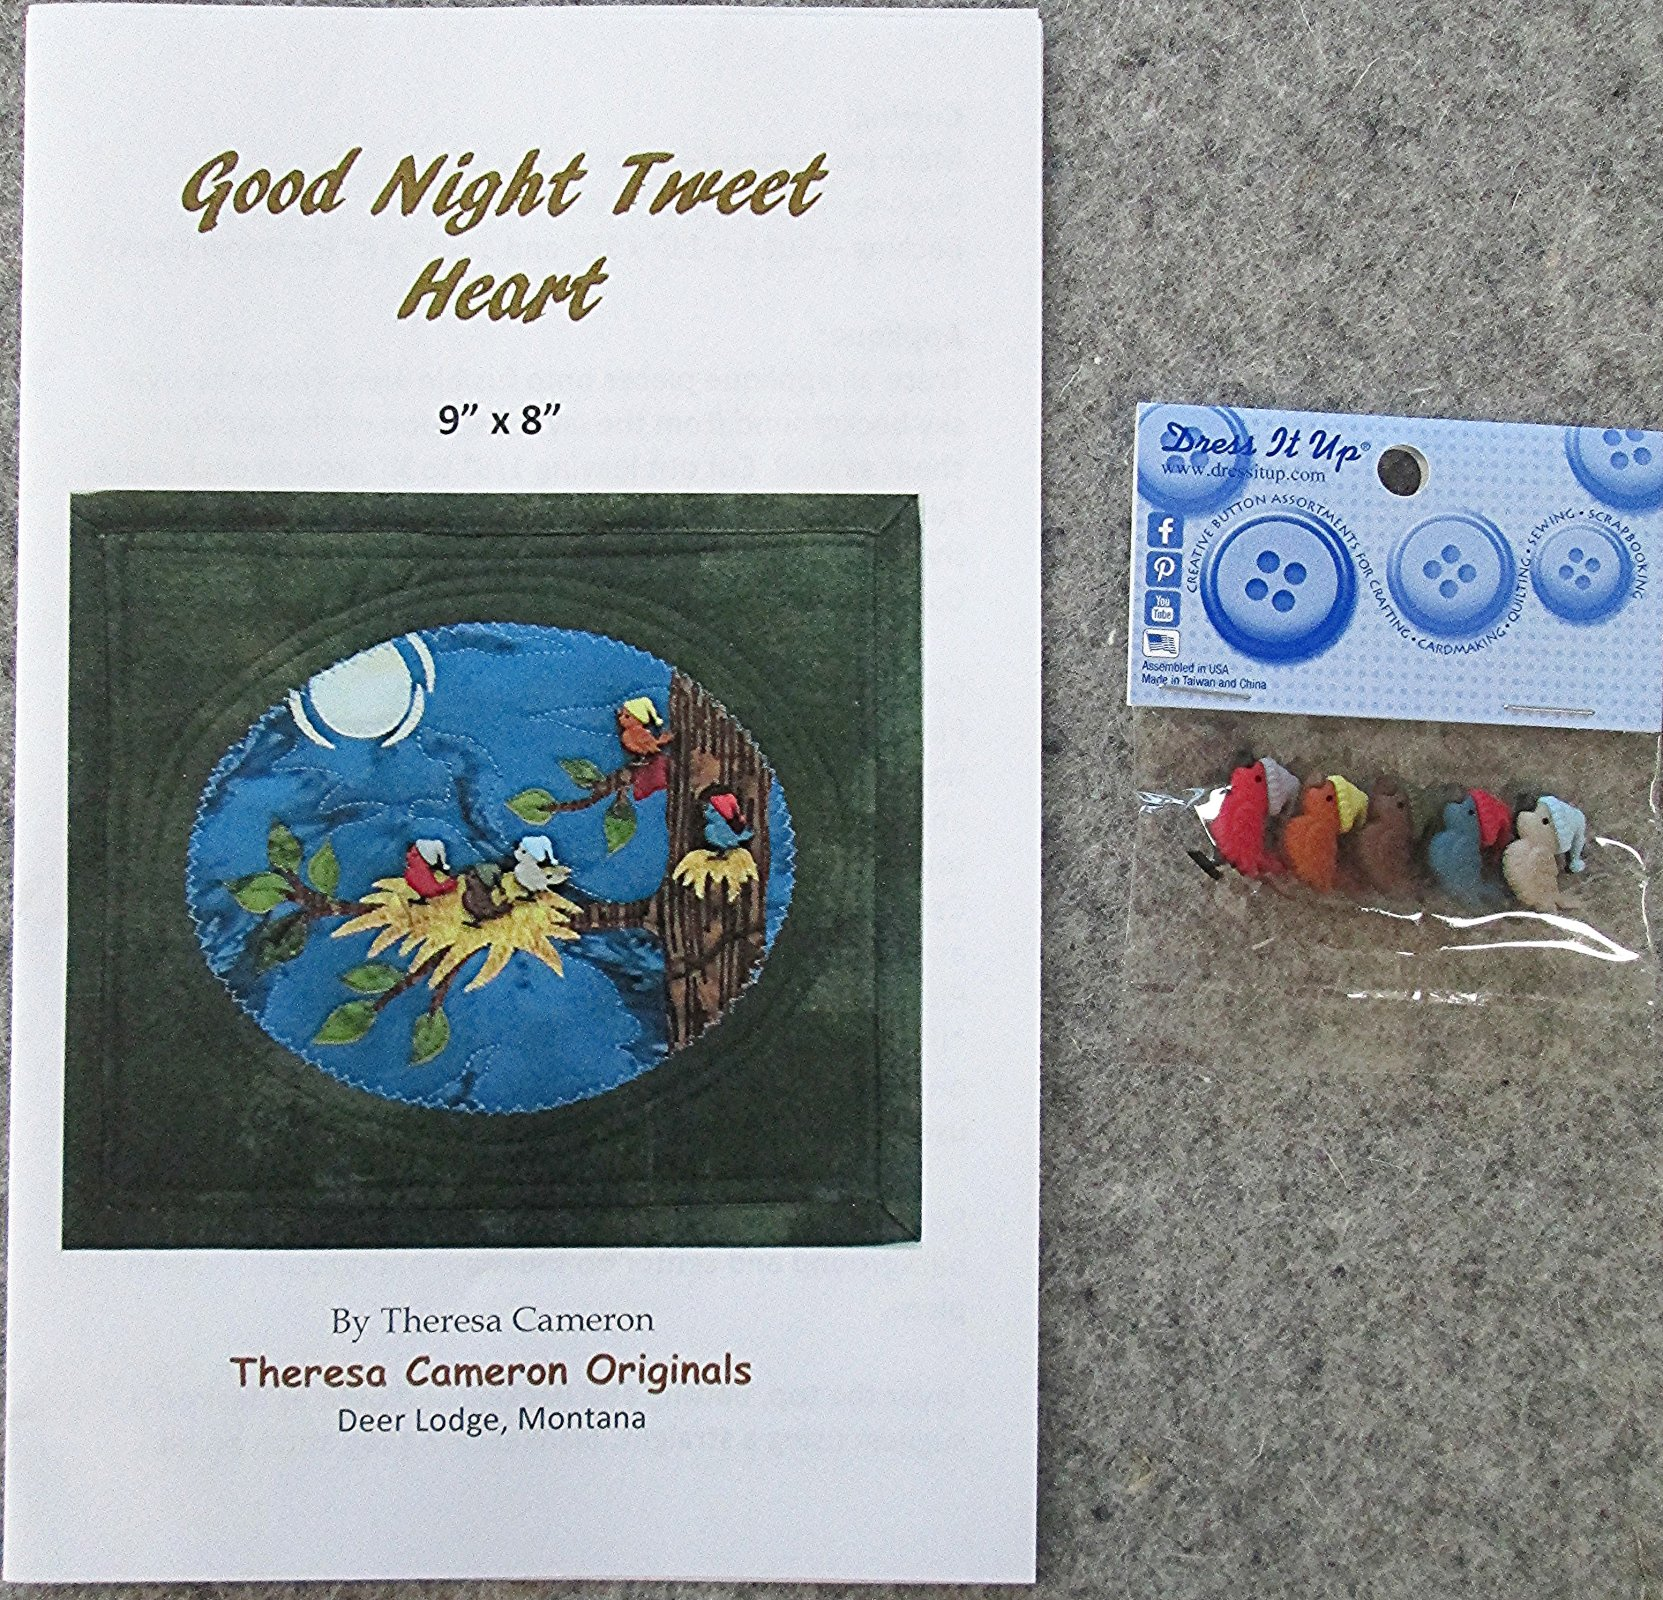 Good Night Tweet Heart Pattern and Buttons